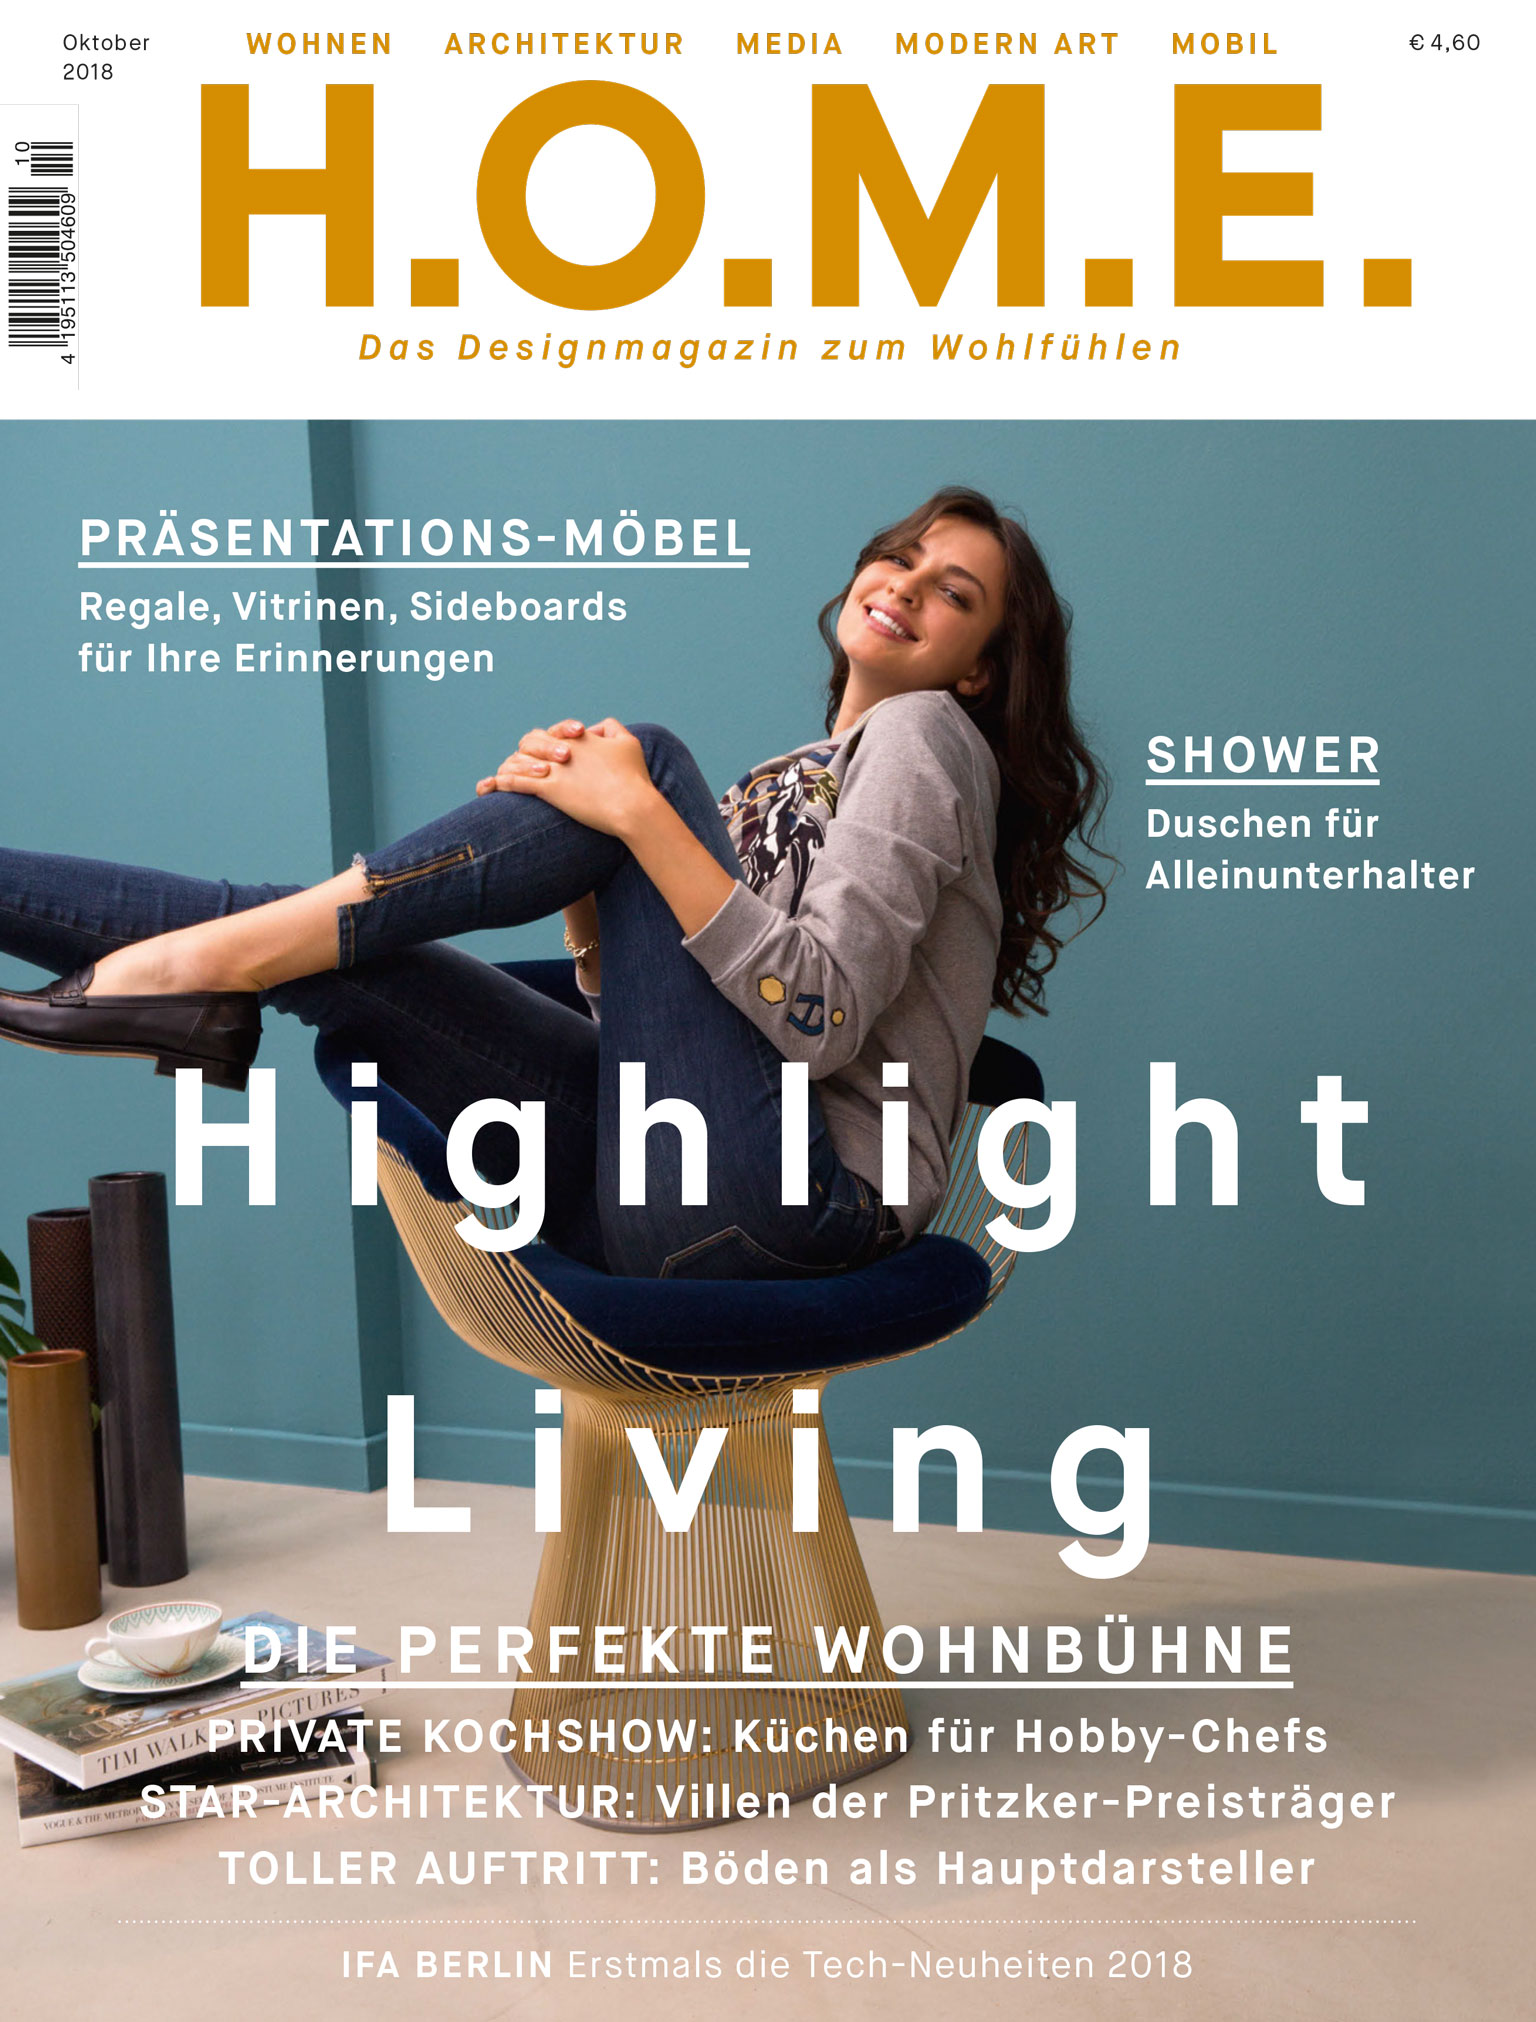 Cover of Home Magazine featuring an interview with architect, Bettina Zerza.